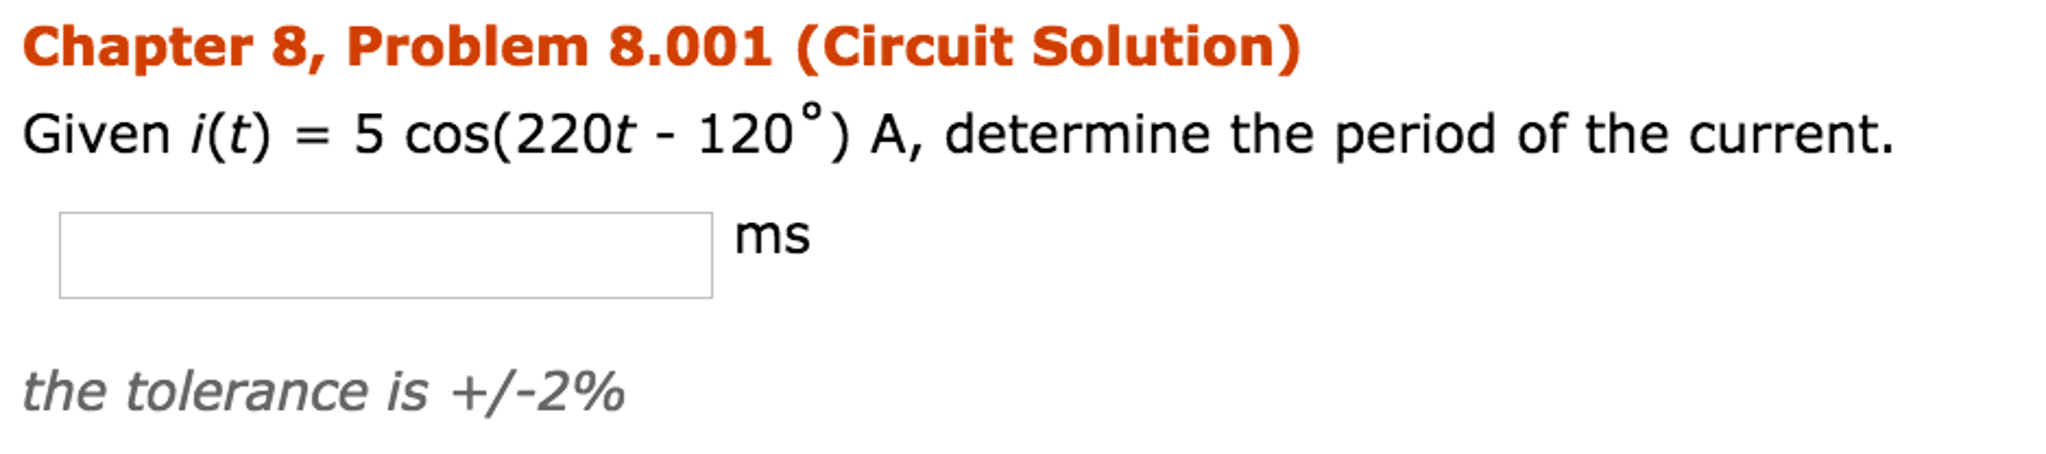 Electrical engineering archive november 20 2016 chegg chapter 8 problem 8001 circuit solution given fandeluxe Choice Image